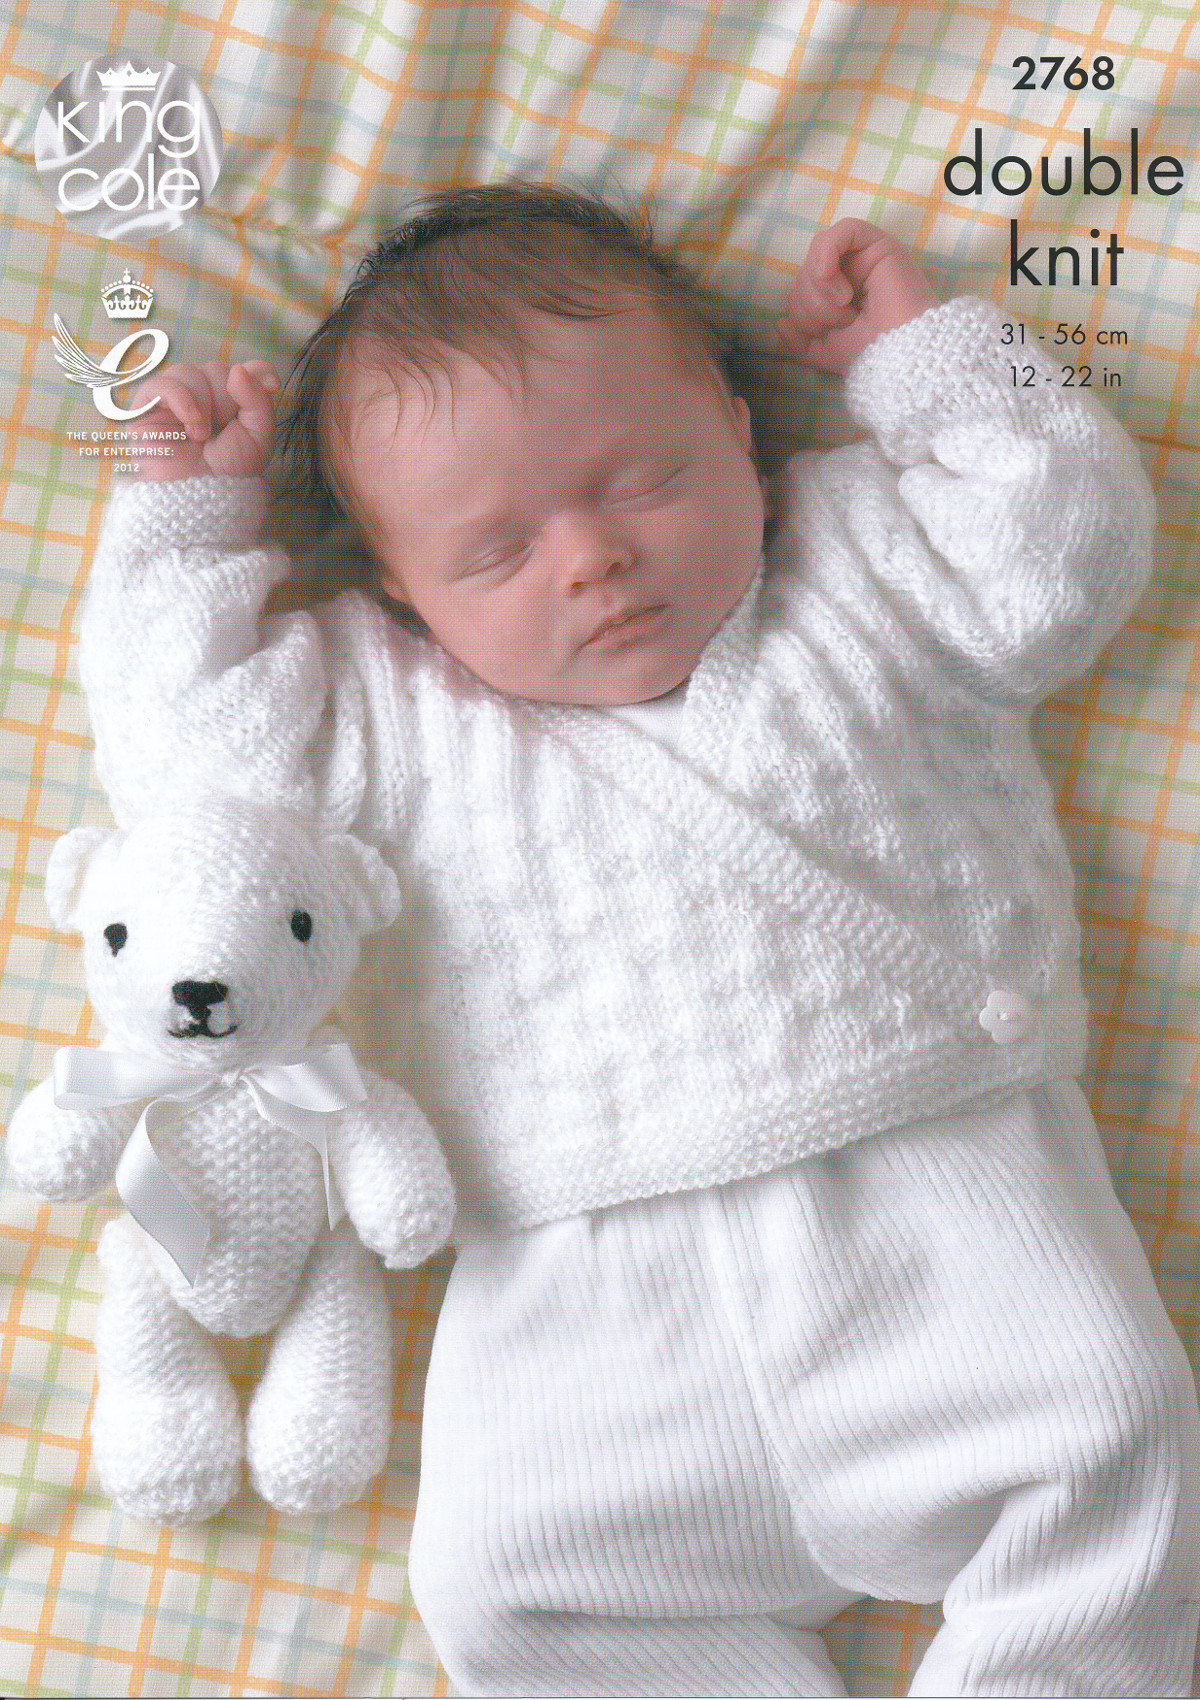 King Cole Double Knitting Pattern Baby Cardigan Sweater Teddy Bear DK Wool 27...